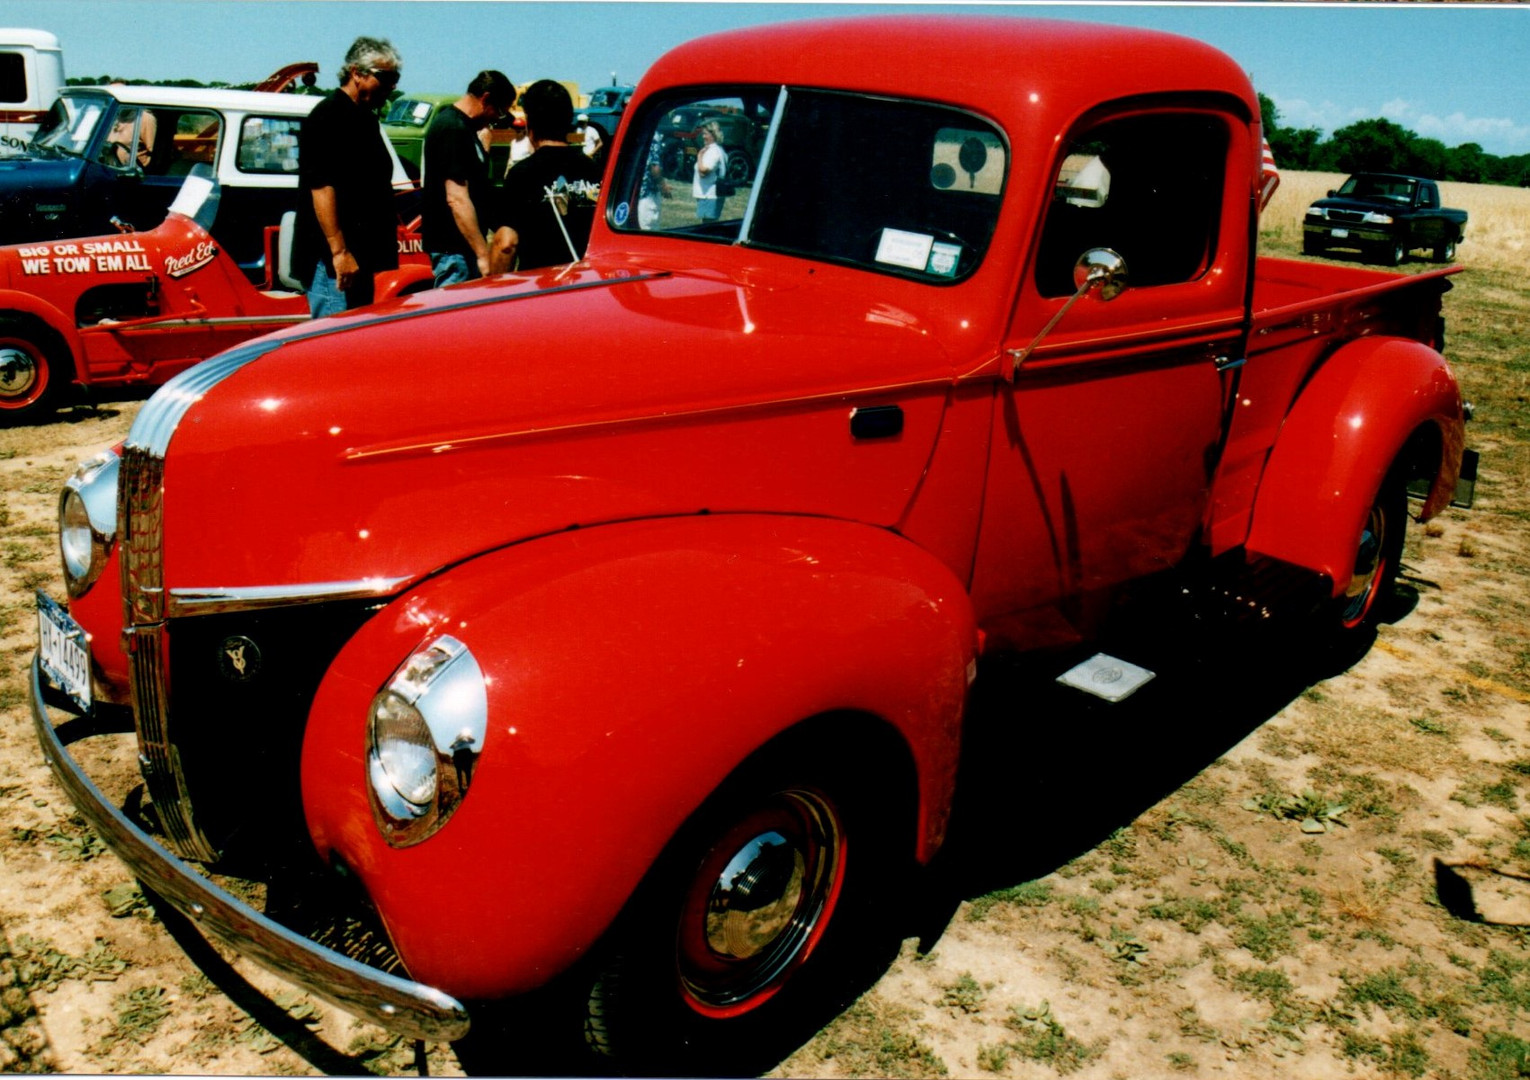 1941 Ford pickup - Robert Hall